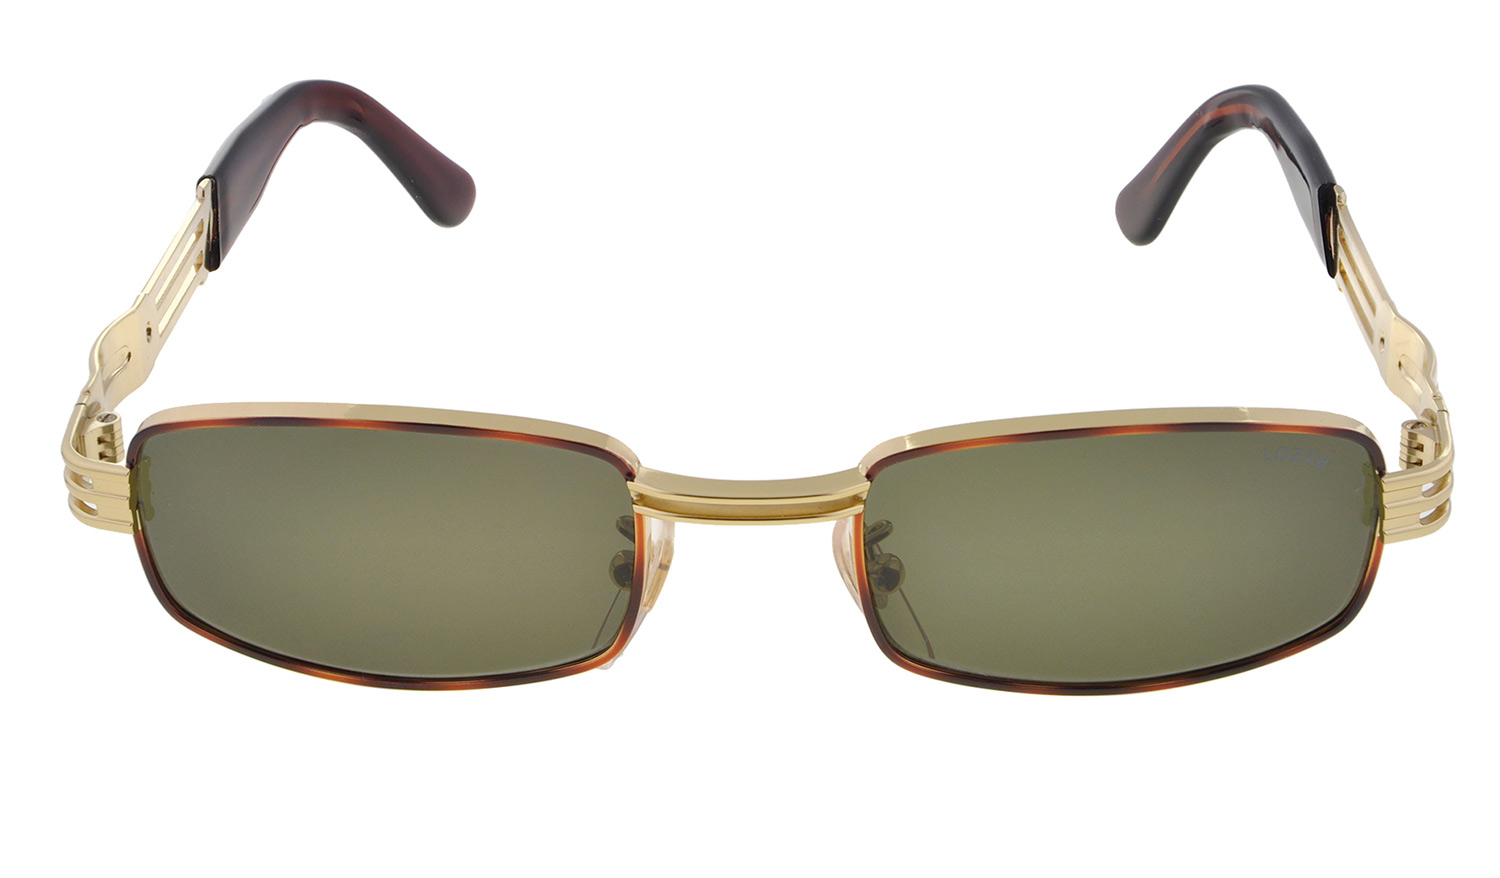 Lozza Vintage Sunglasses 80s Made In Italy Gold